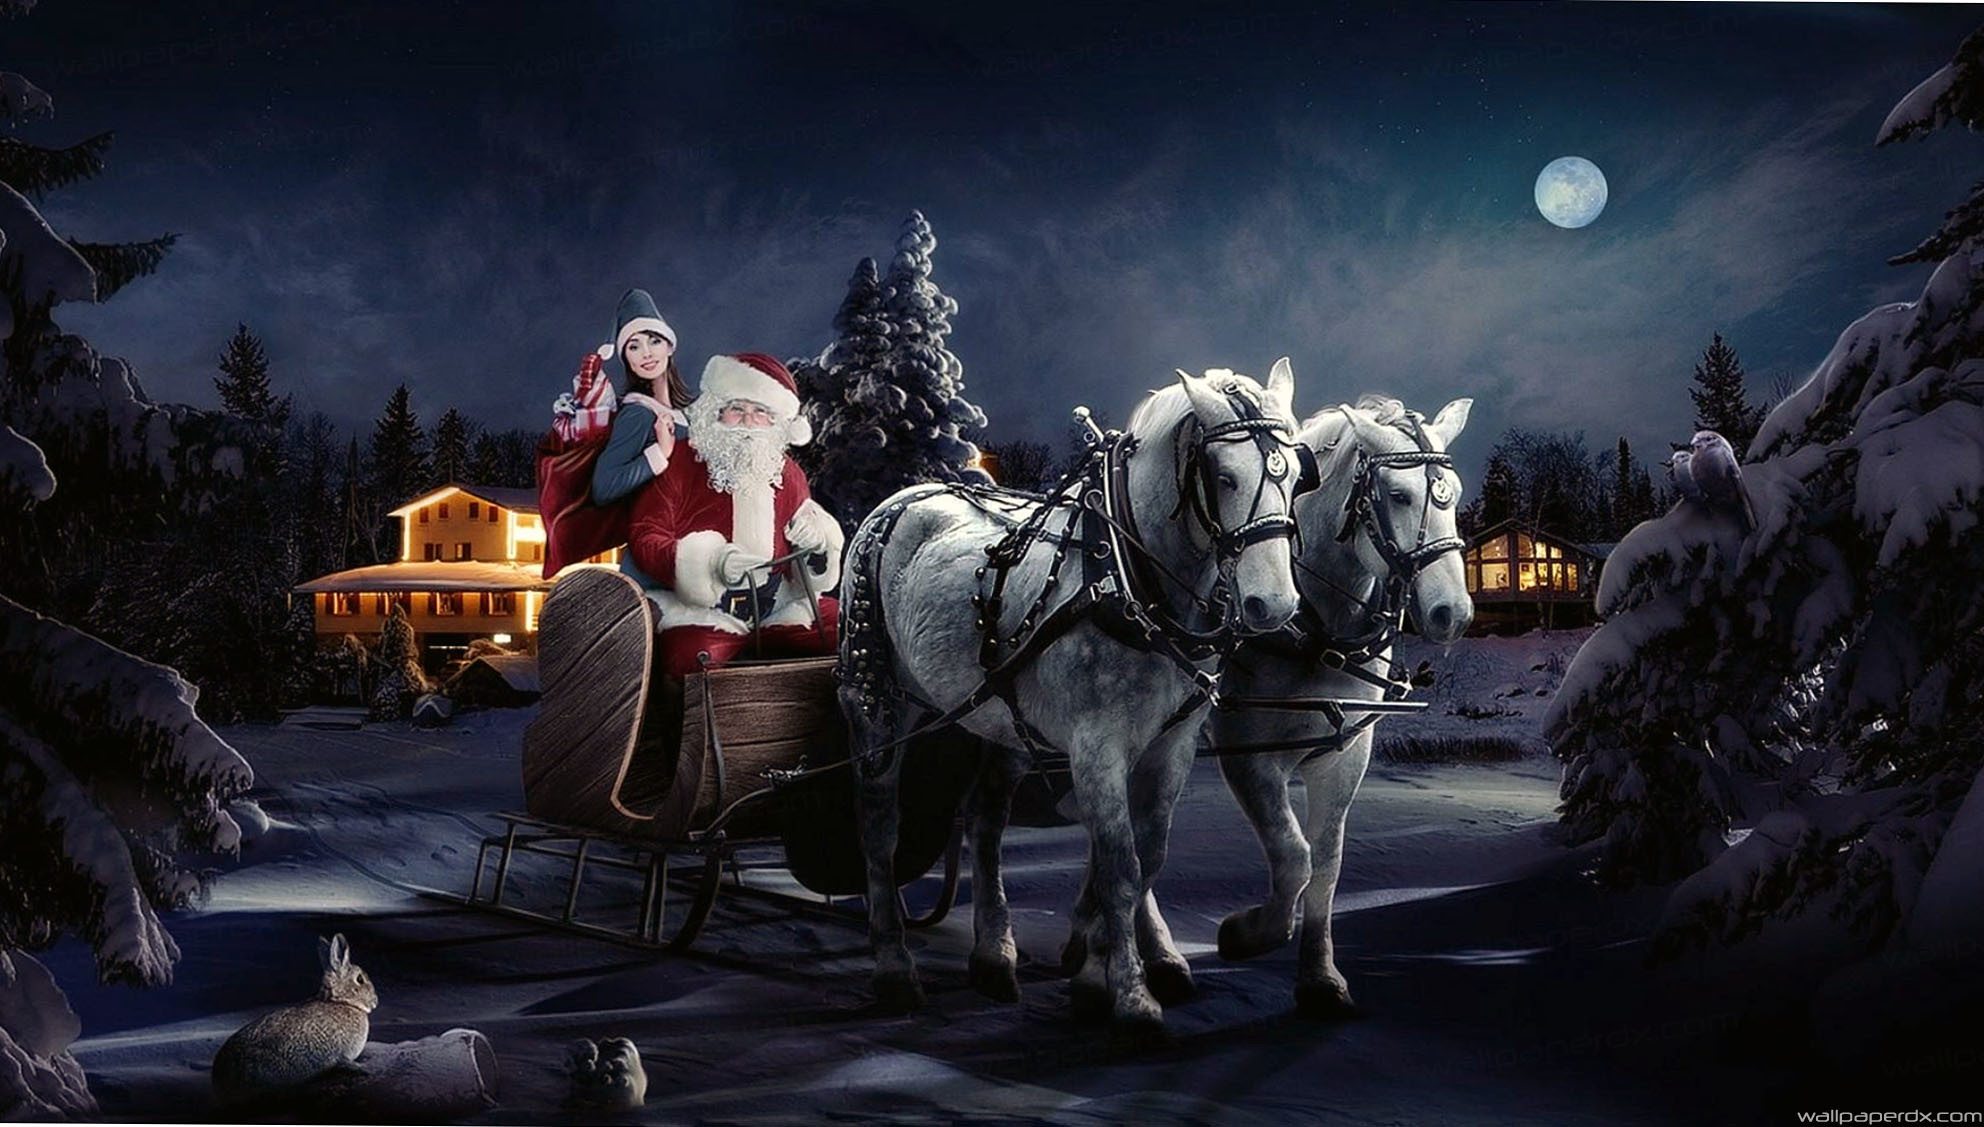 Res: 1984x1127, santa claus sleigh girl horse tree night christmas bag gifts hd wallpaper -  Full Hd Original Size